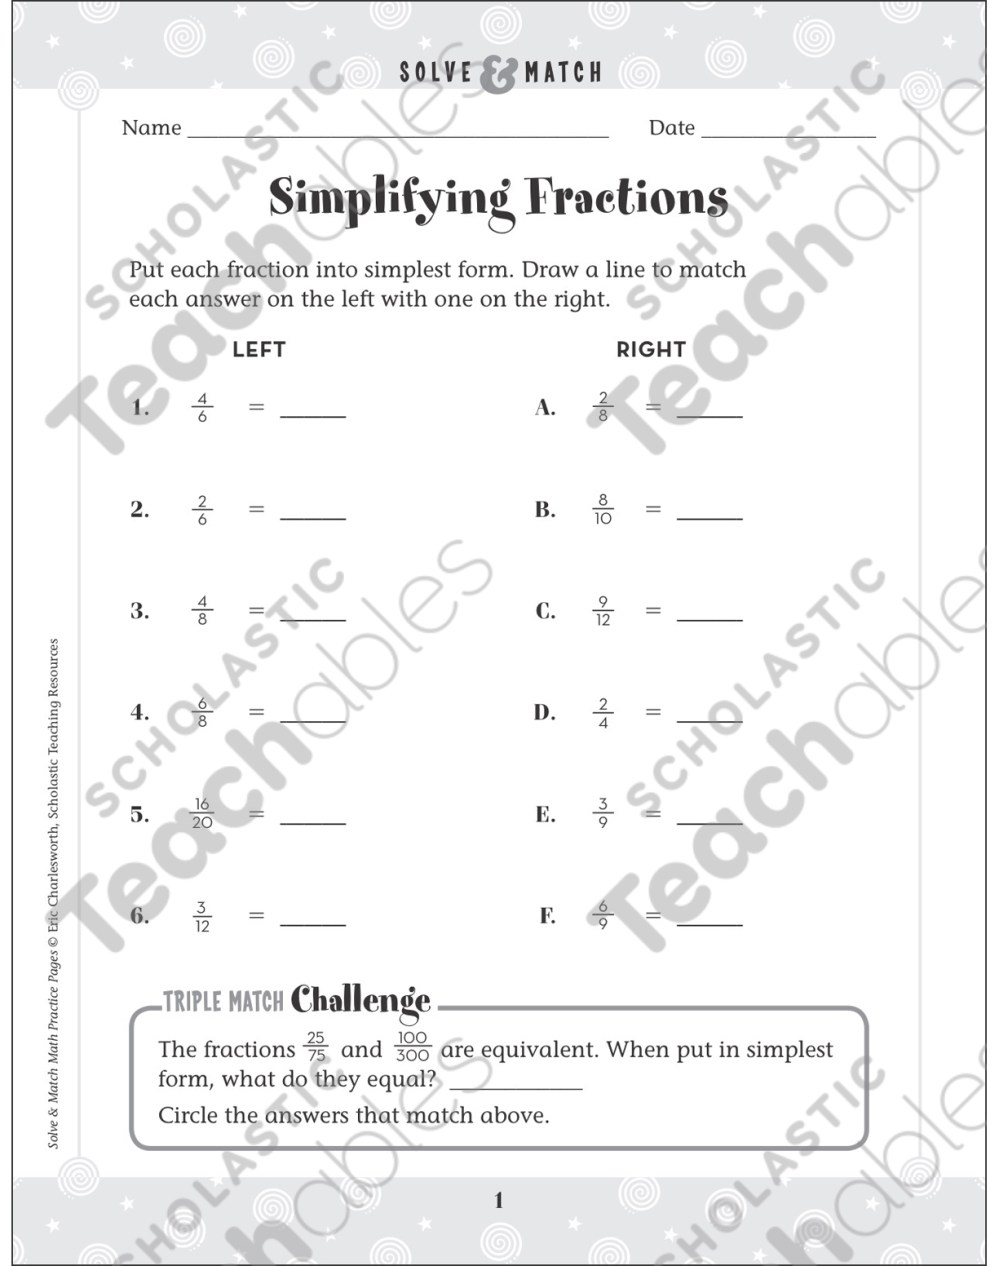 medium resolution of Simplifying Fractions: Solve \u0026 Match Math   Printable Skills Sheets